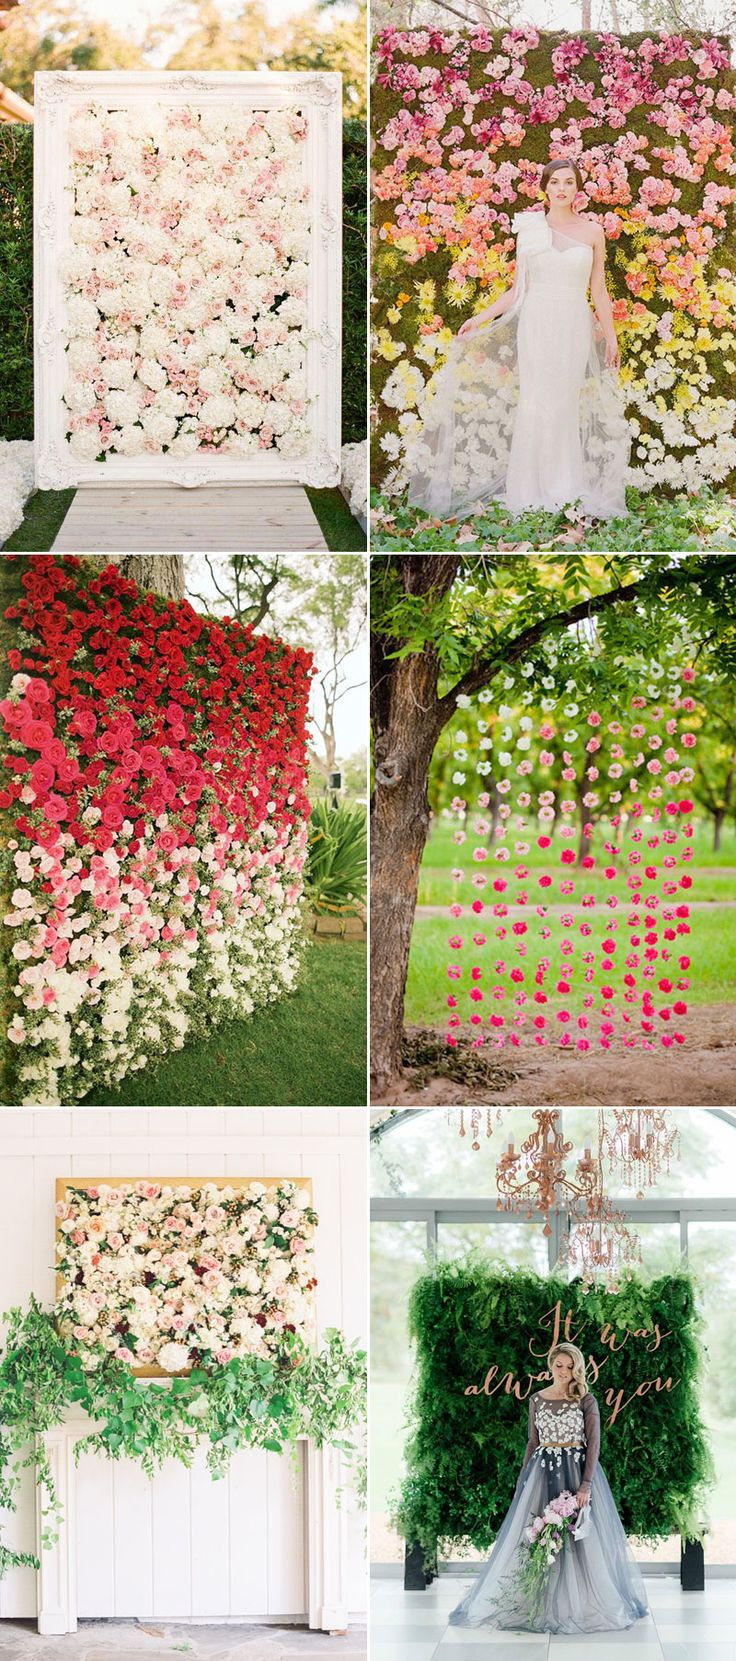 30 Stylish Ways To Create A Lush, Flower Filled Wedding